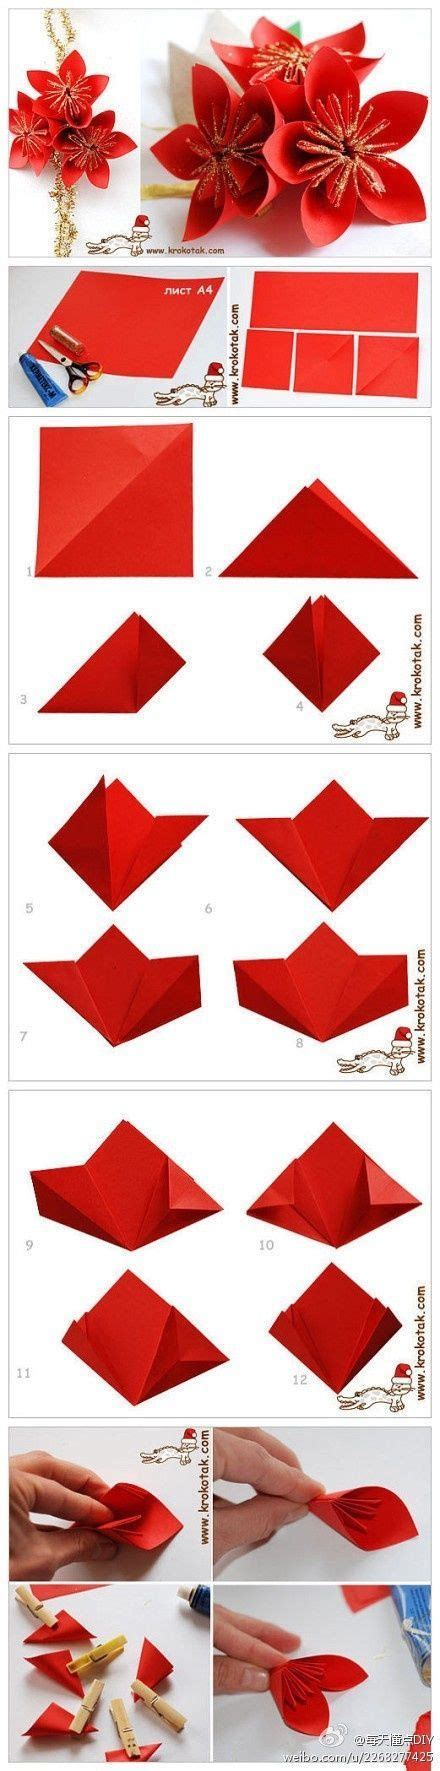 Origami Poinsettia - origami poinsettia pictures photos and images for